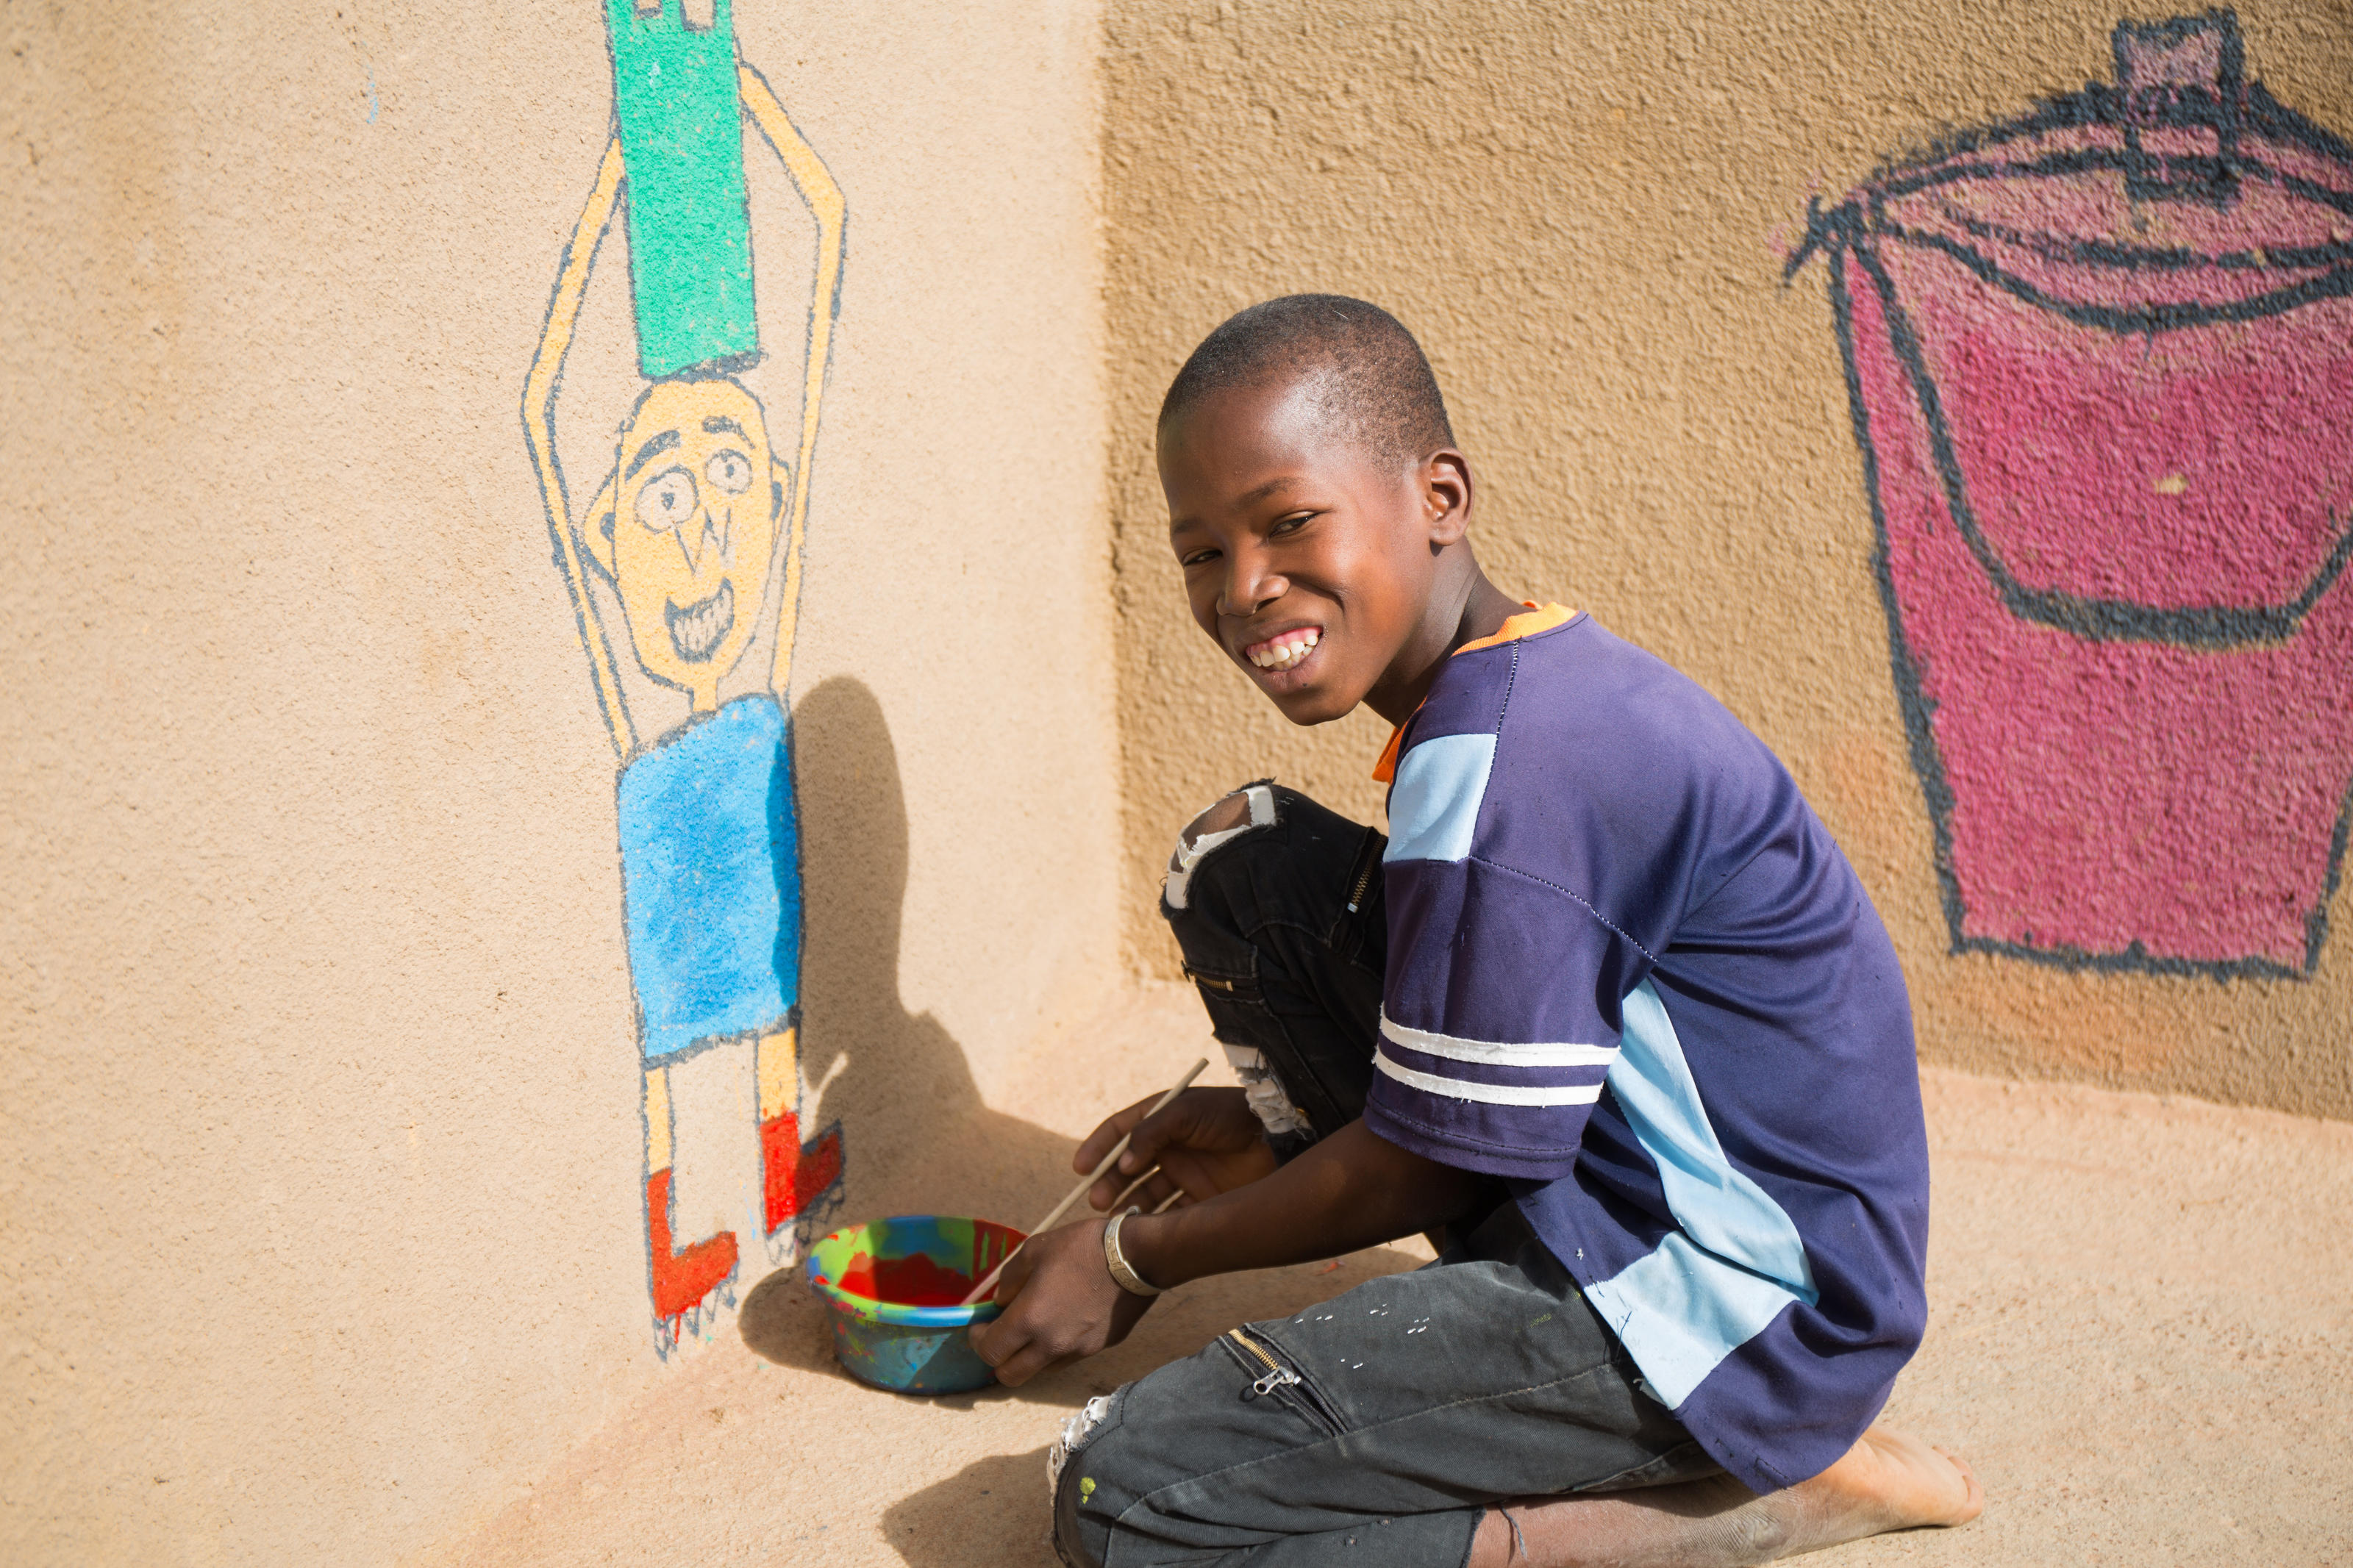 Dramane, 13, a sixth year pupil at Wakoro undergraduate school, doing some murals at the borehole in the district of Bla, Segou, Mali, October 2018.